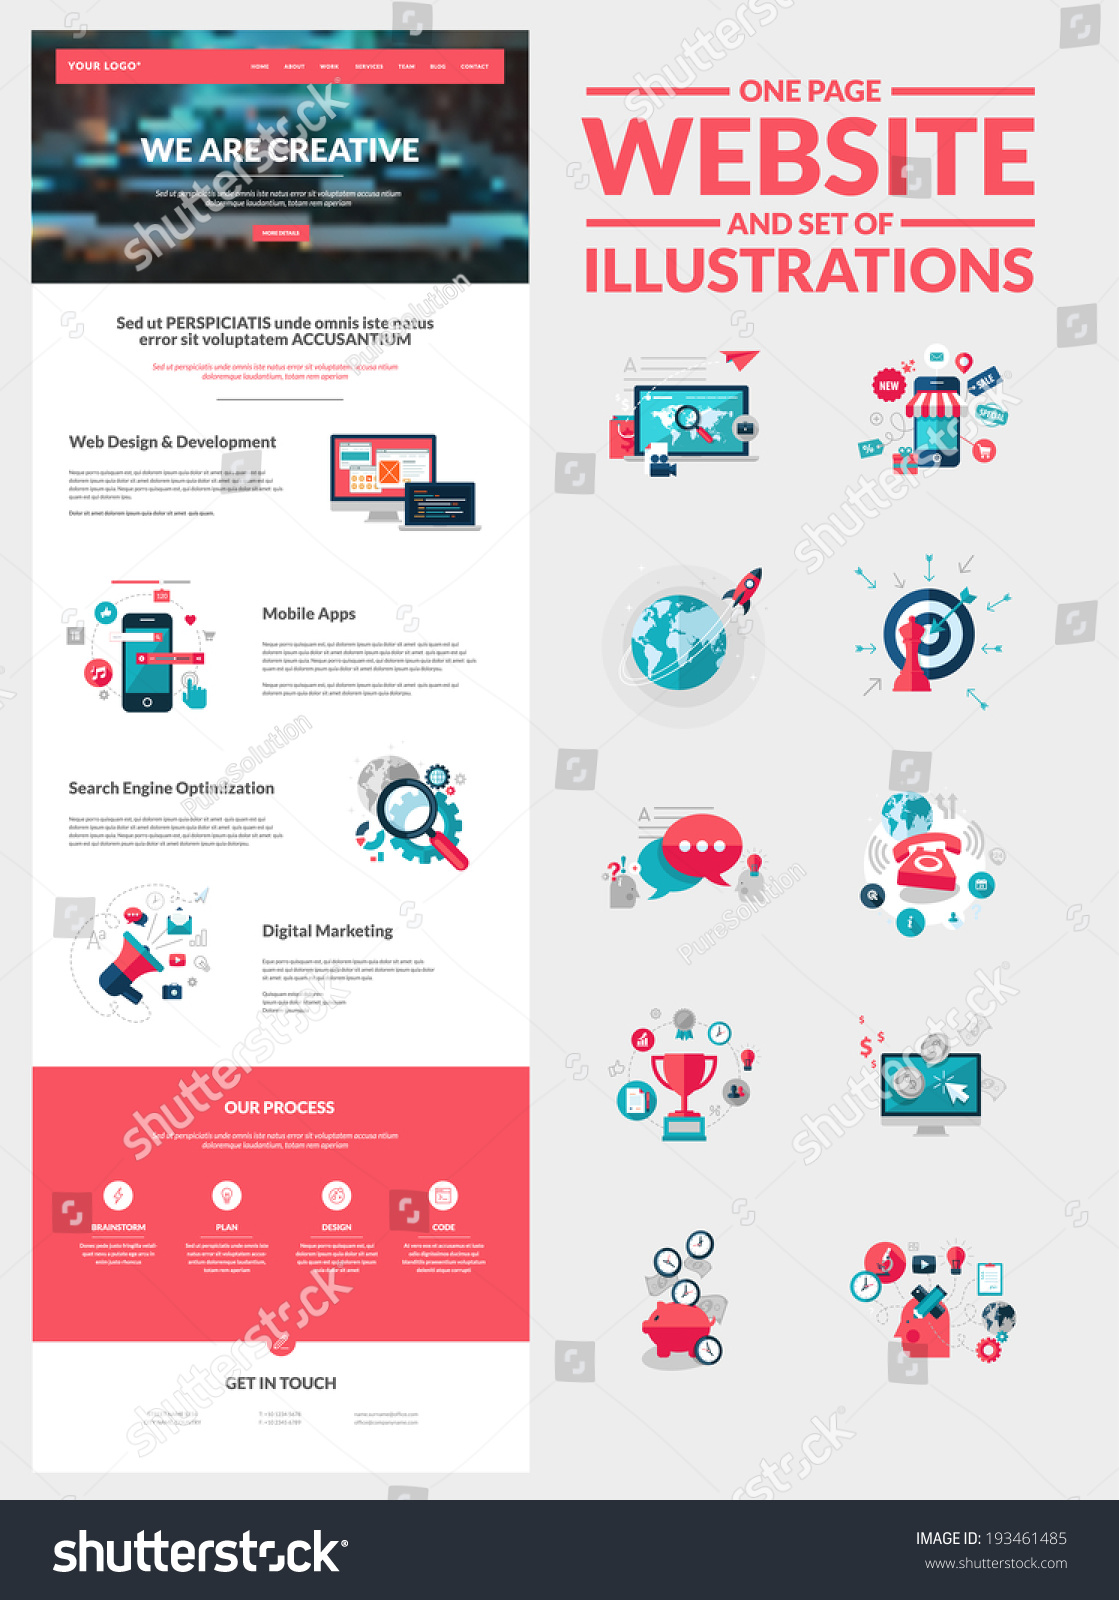 Vector Illustration Web Designs: One Page Website Design Template. All In One Set For